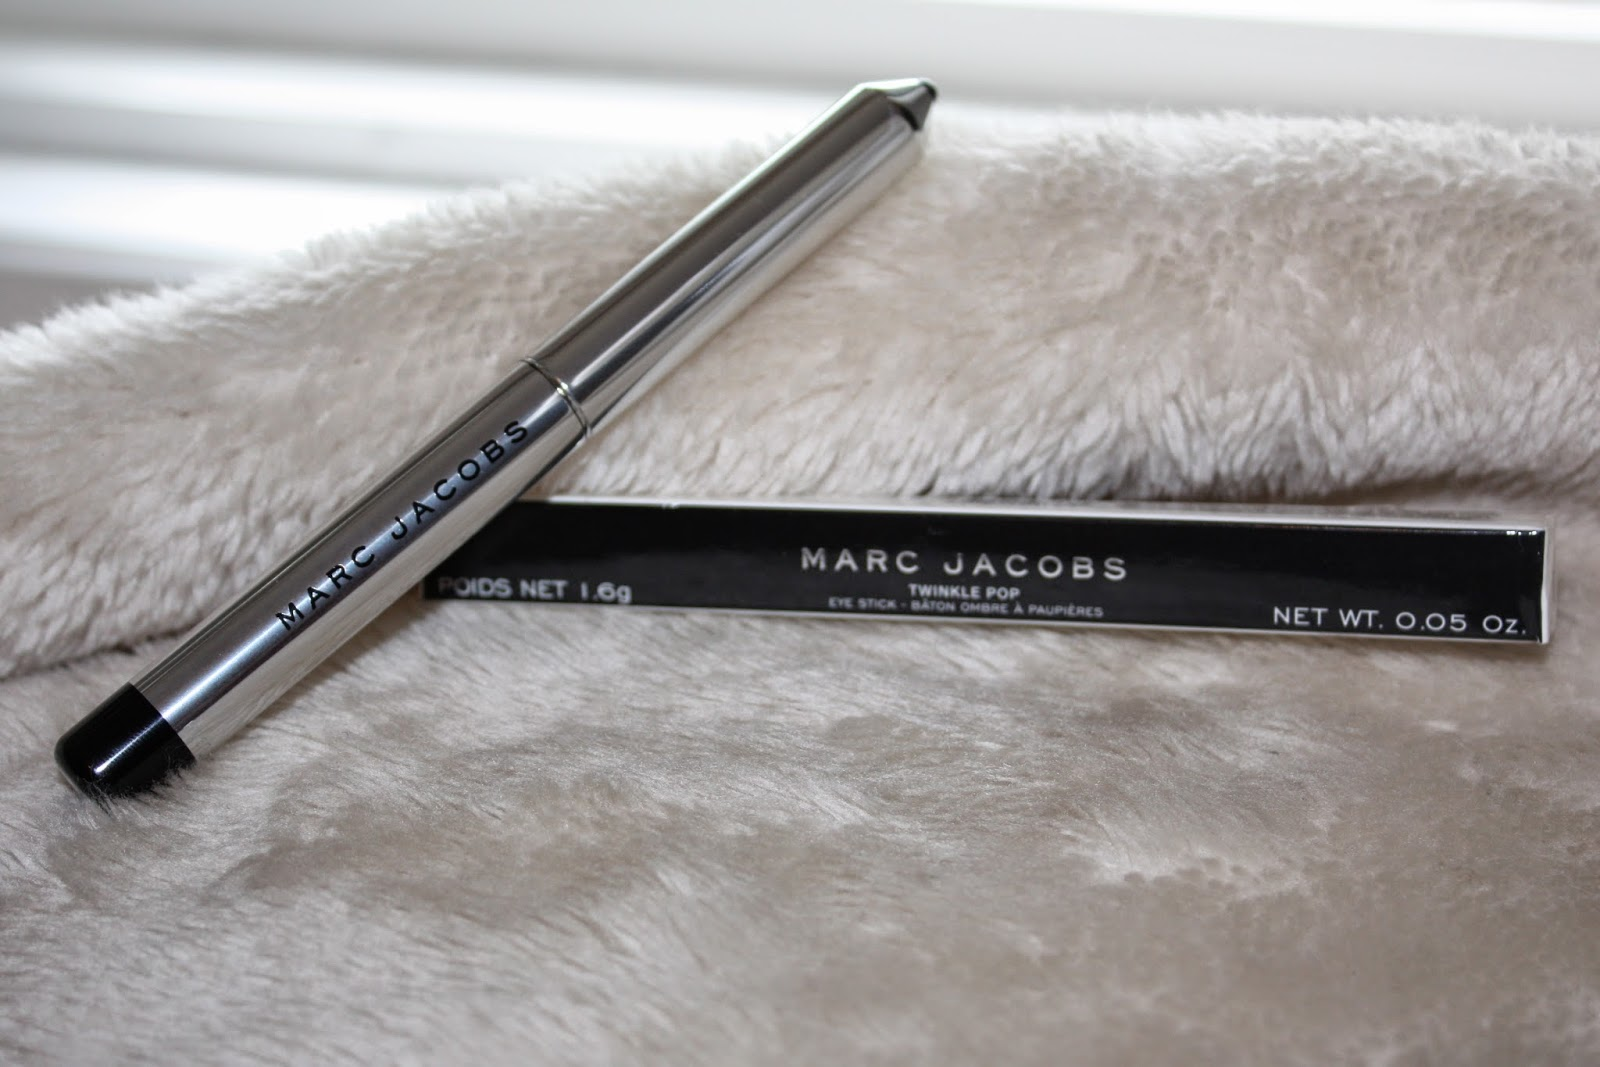 Marc Jacobs Beauty Twinkle Pop Eye Stick in 410 Stardust Review & Swatch